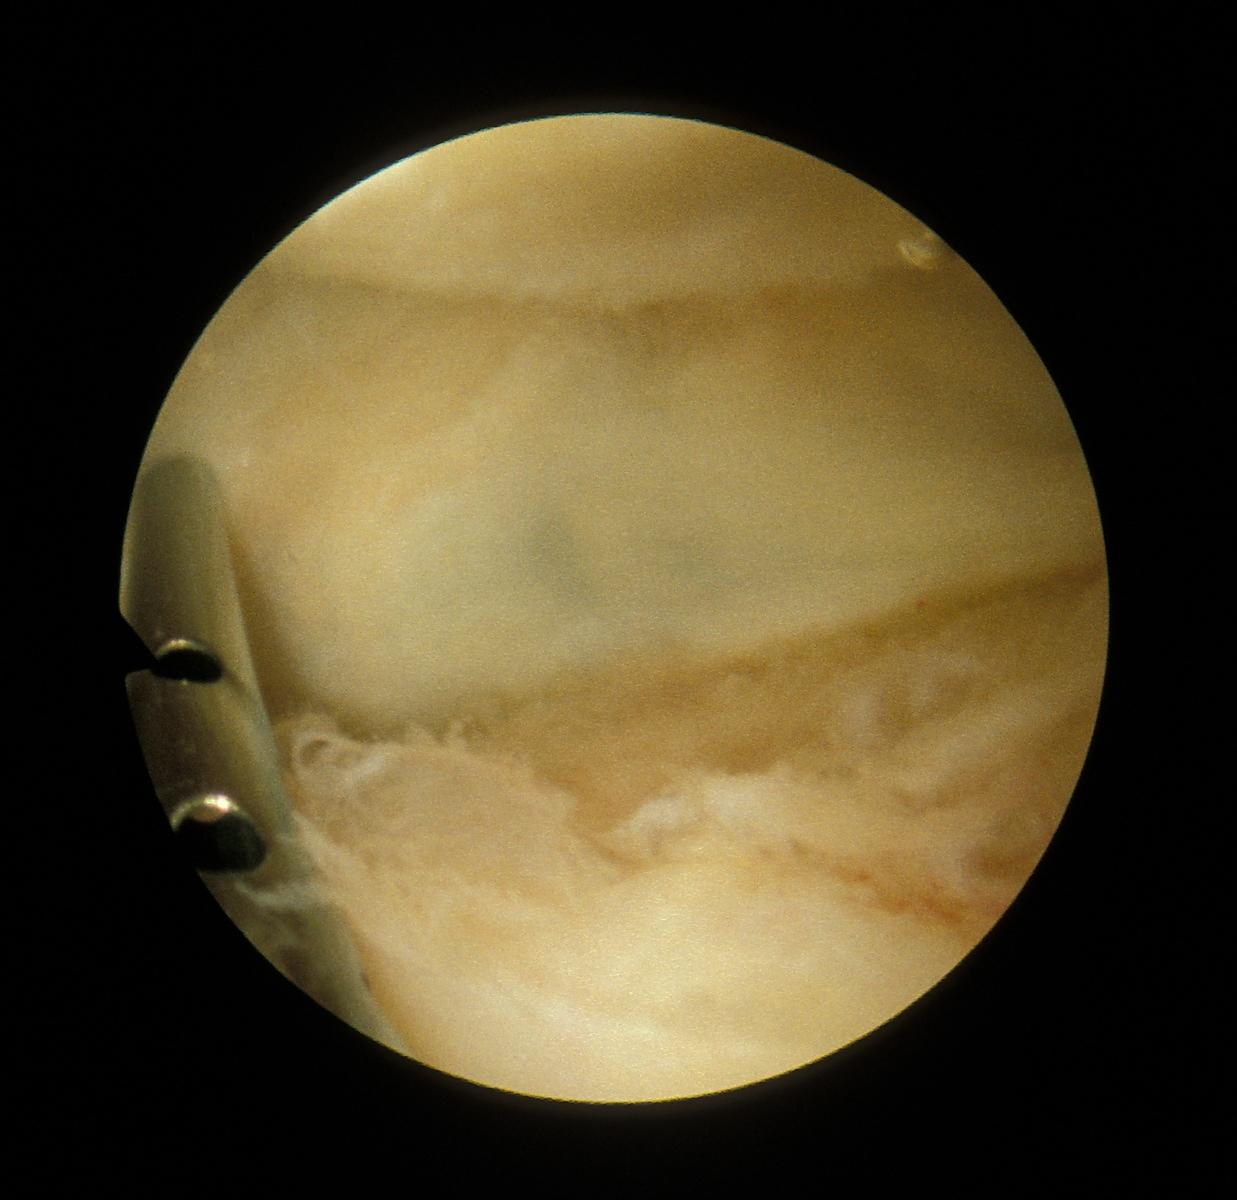 Suprapatellar plica viewed from inferior portal